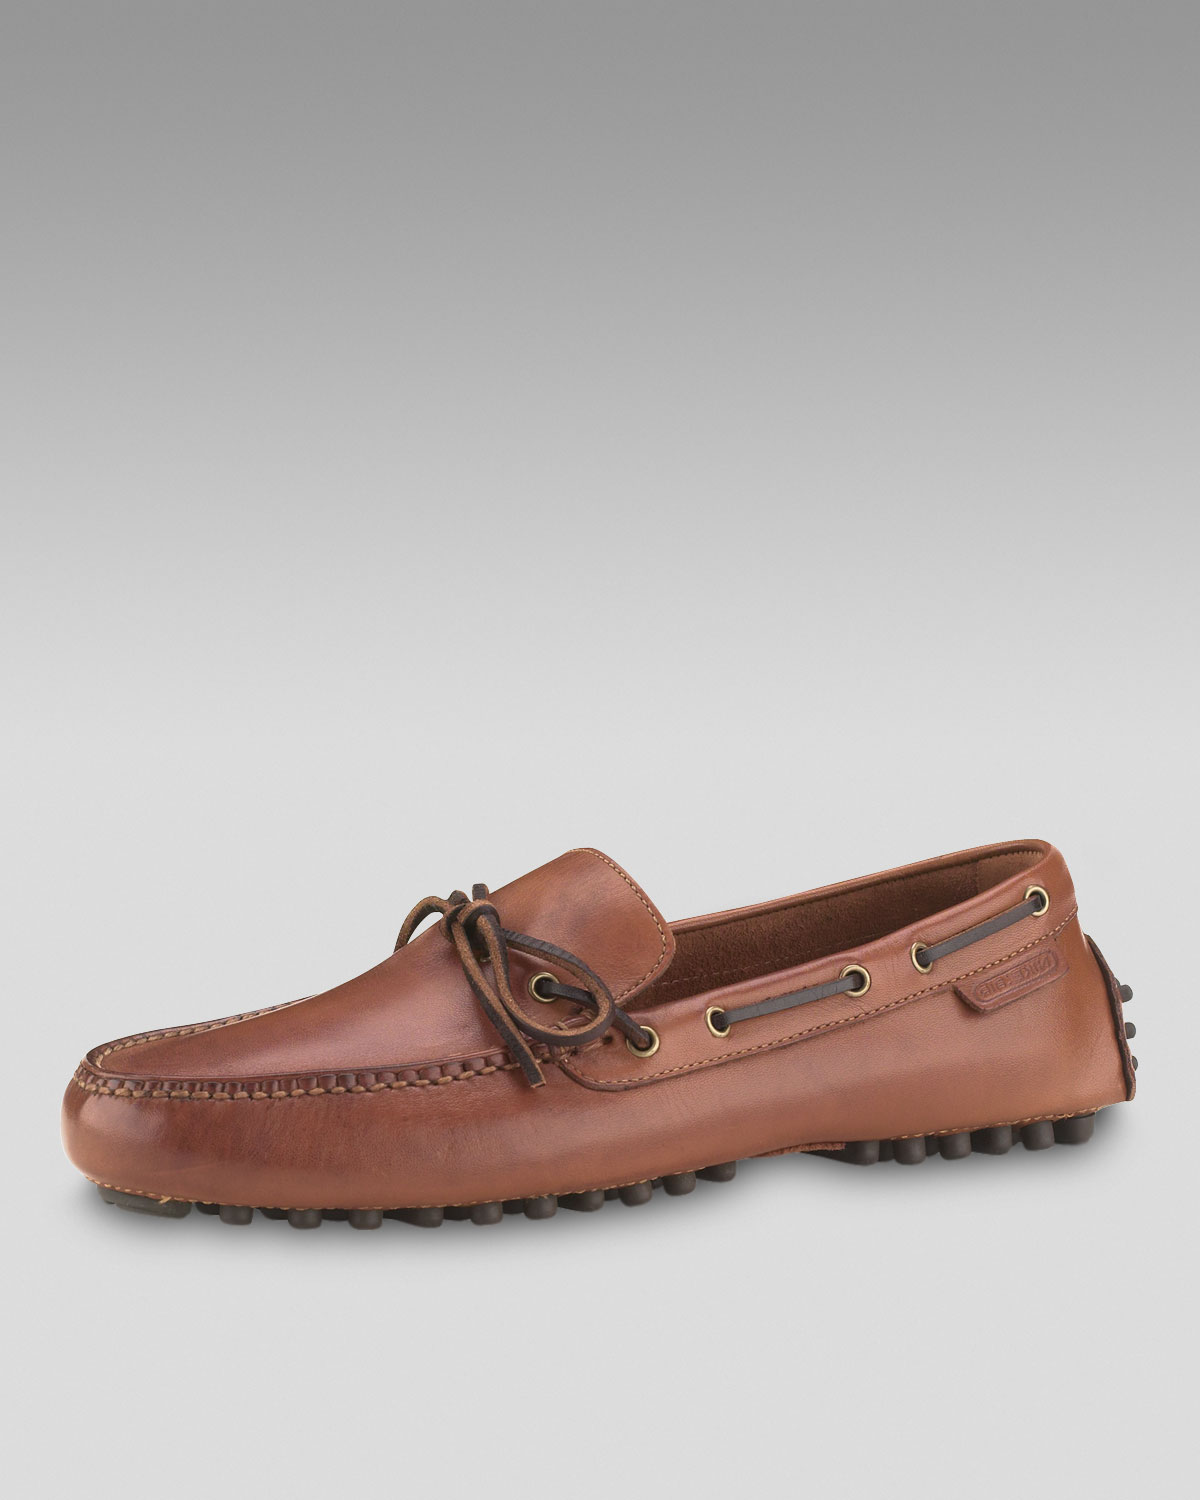 602c39bbed7 Lyst - Cole Haan Air Grant Moccasin in Brown for Men